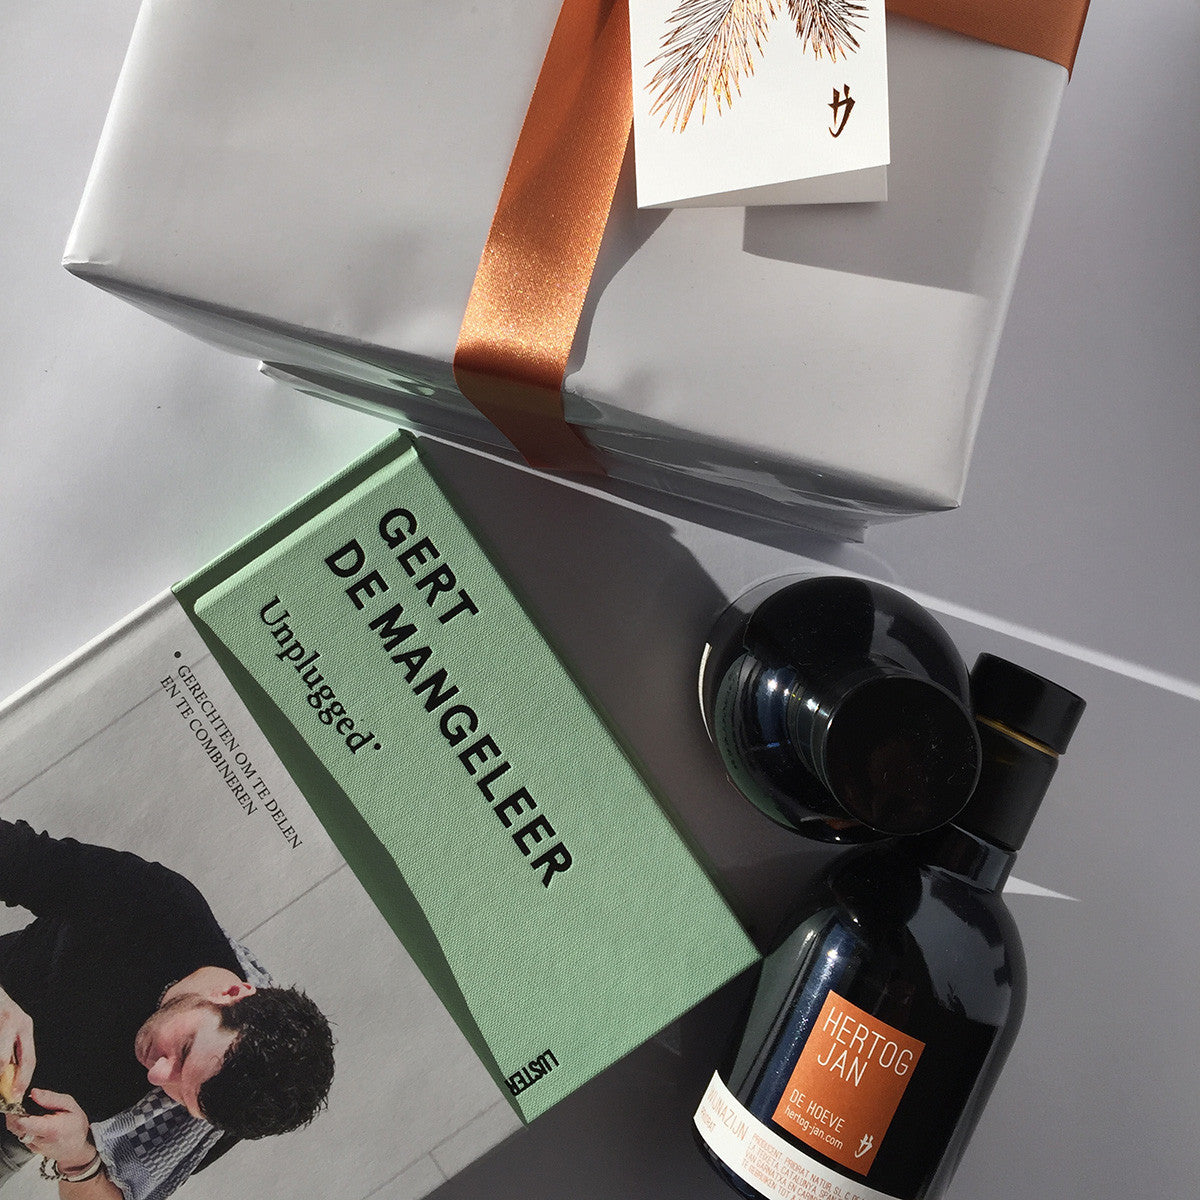 Gift - Book Gert De Mangeleer + Olive Oil & Wine Vinegar